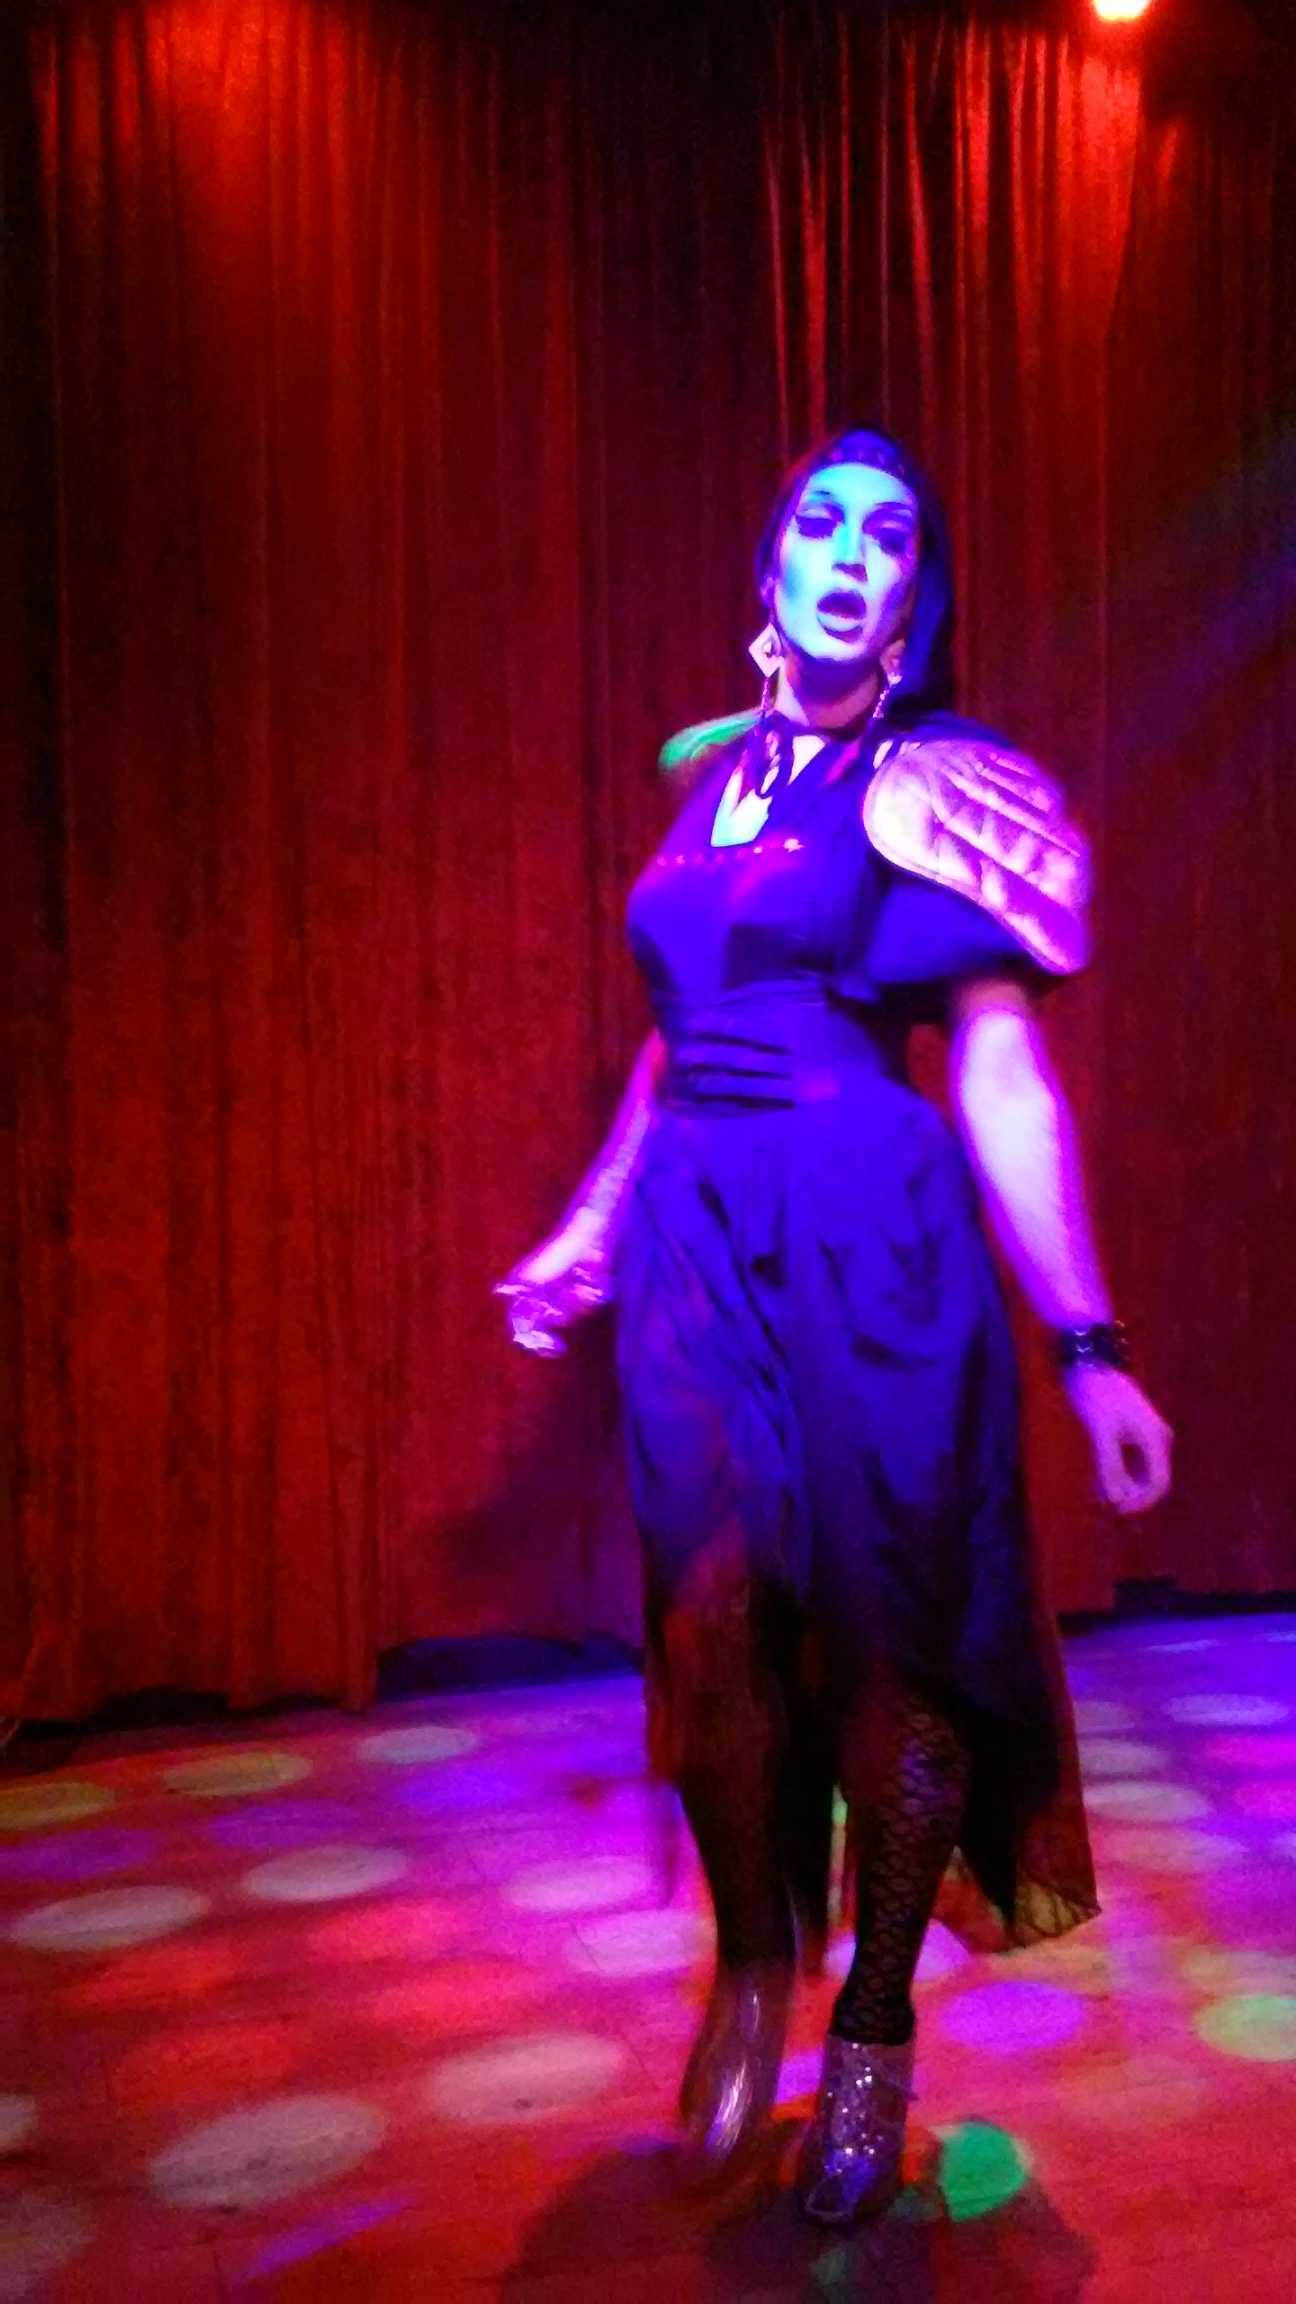 Dragshow 20151121 DungeonsDragQueens 06